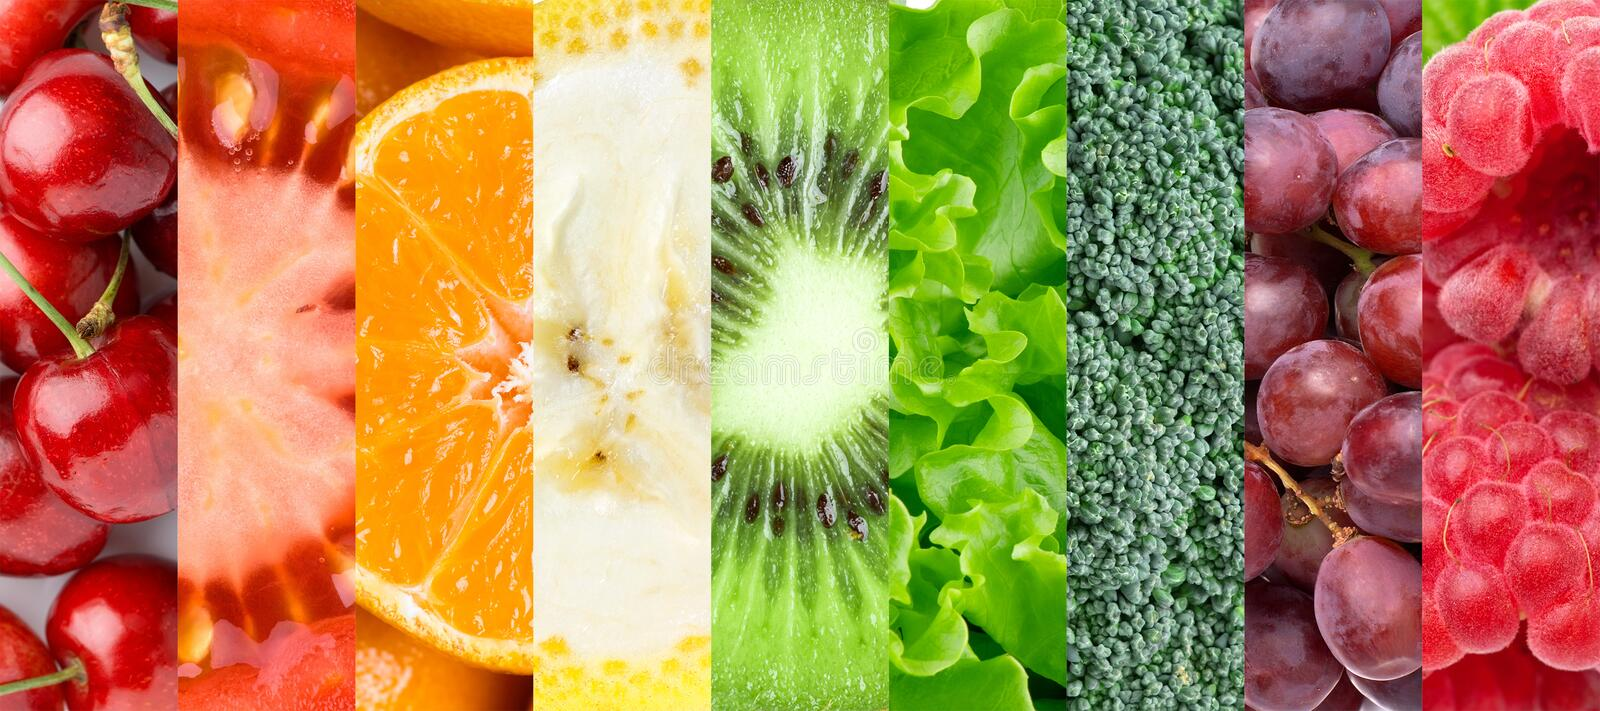 Healthy food background royalty free stock images